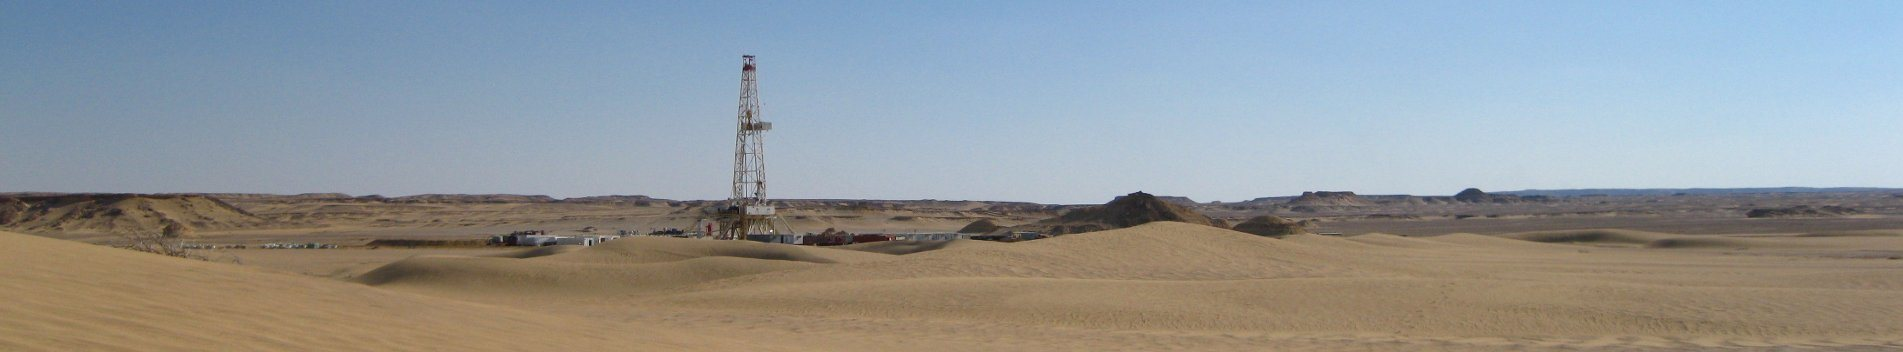 Rig and wellsite view from afar in the desert dunes